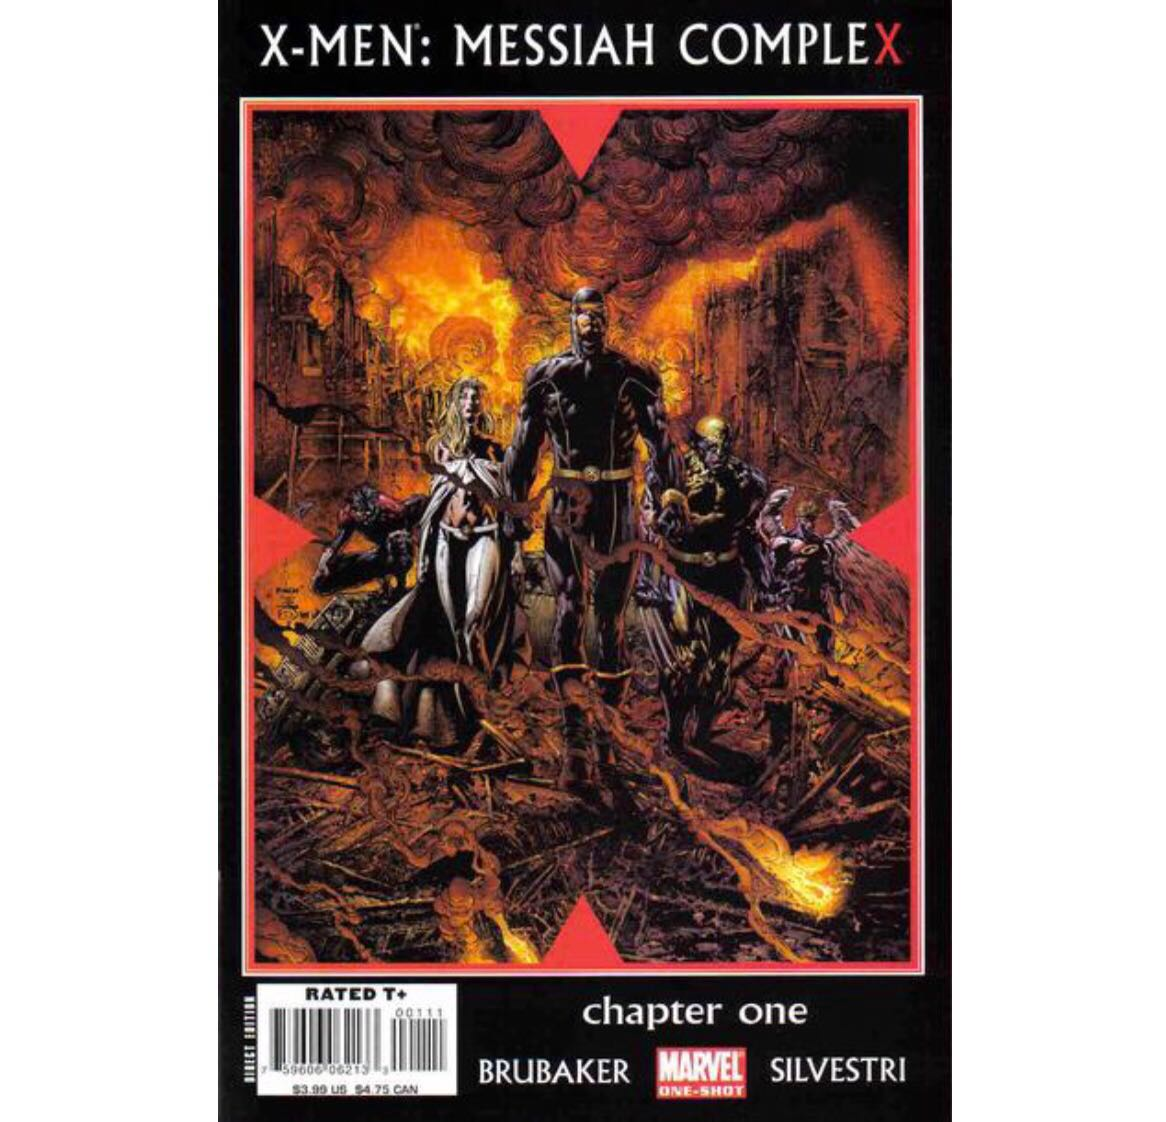 X-MEN MESSIAH COMPLEX #1 (2007) 1st issue!